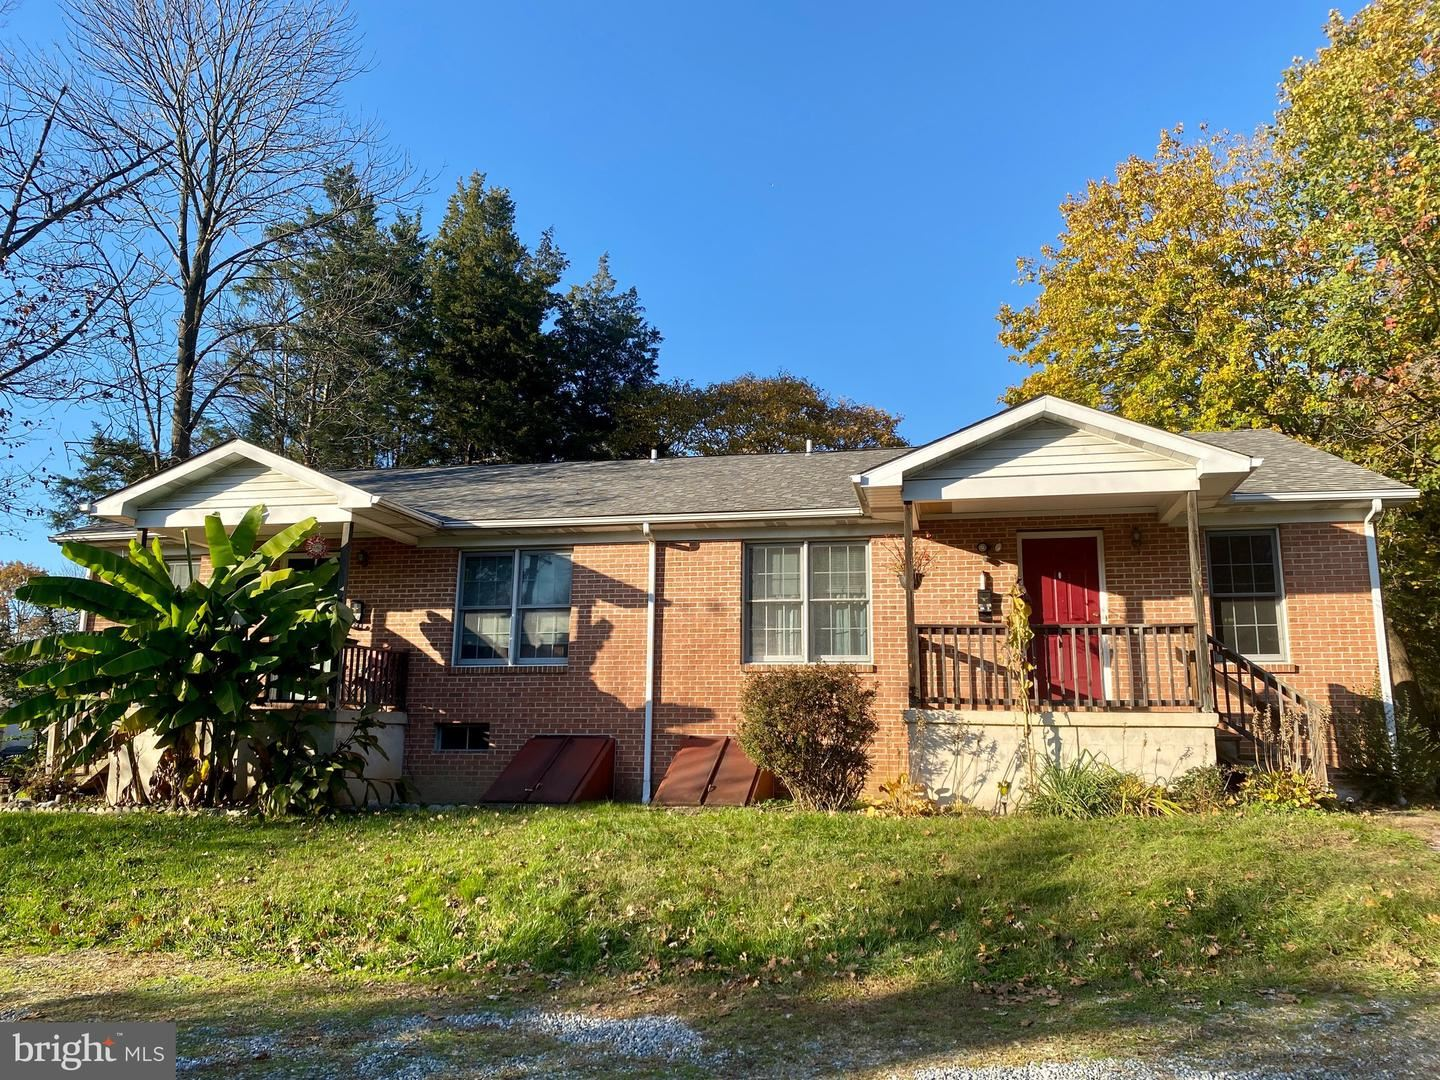 417 E CECIL AVE, North East, MD 21901 - MLS#: MDCC171764